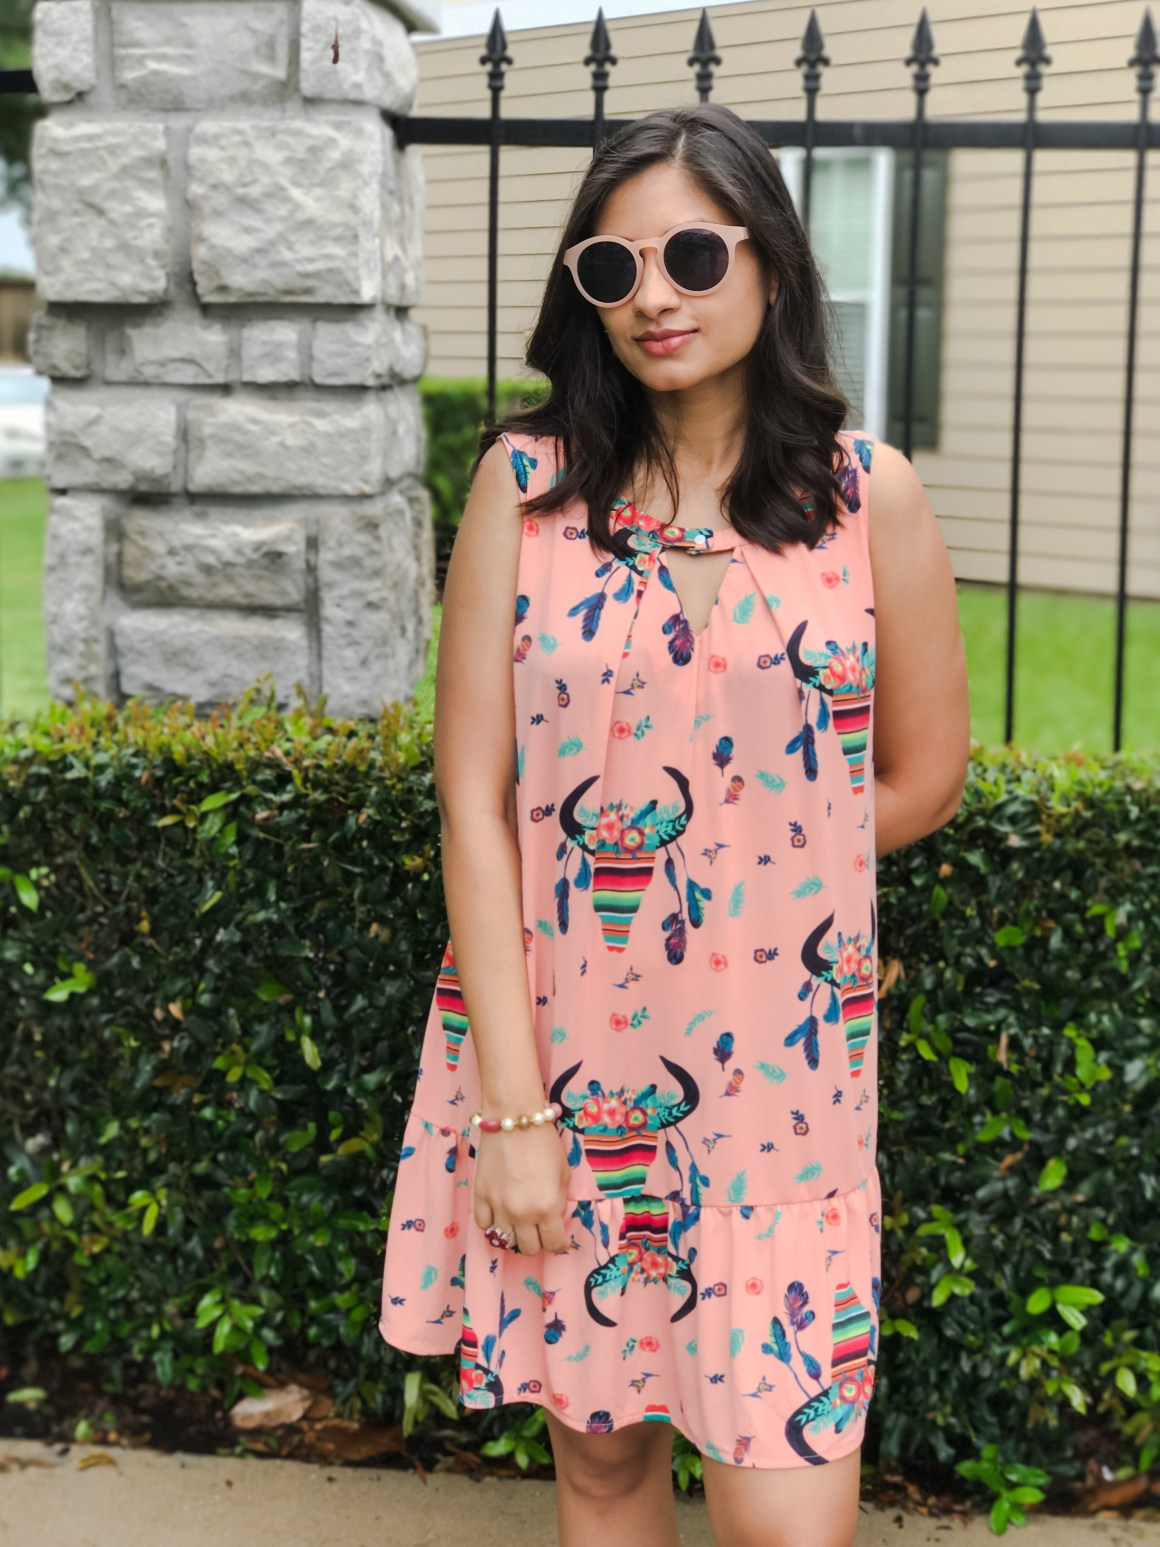 Quirky Print Dress  - Giddy Up Glamour, J. Crew sunglasses